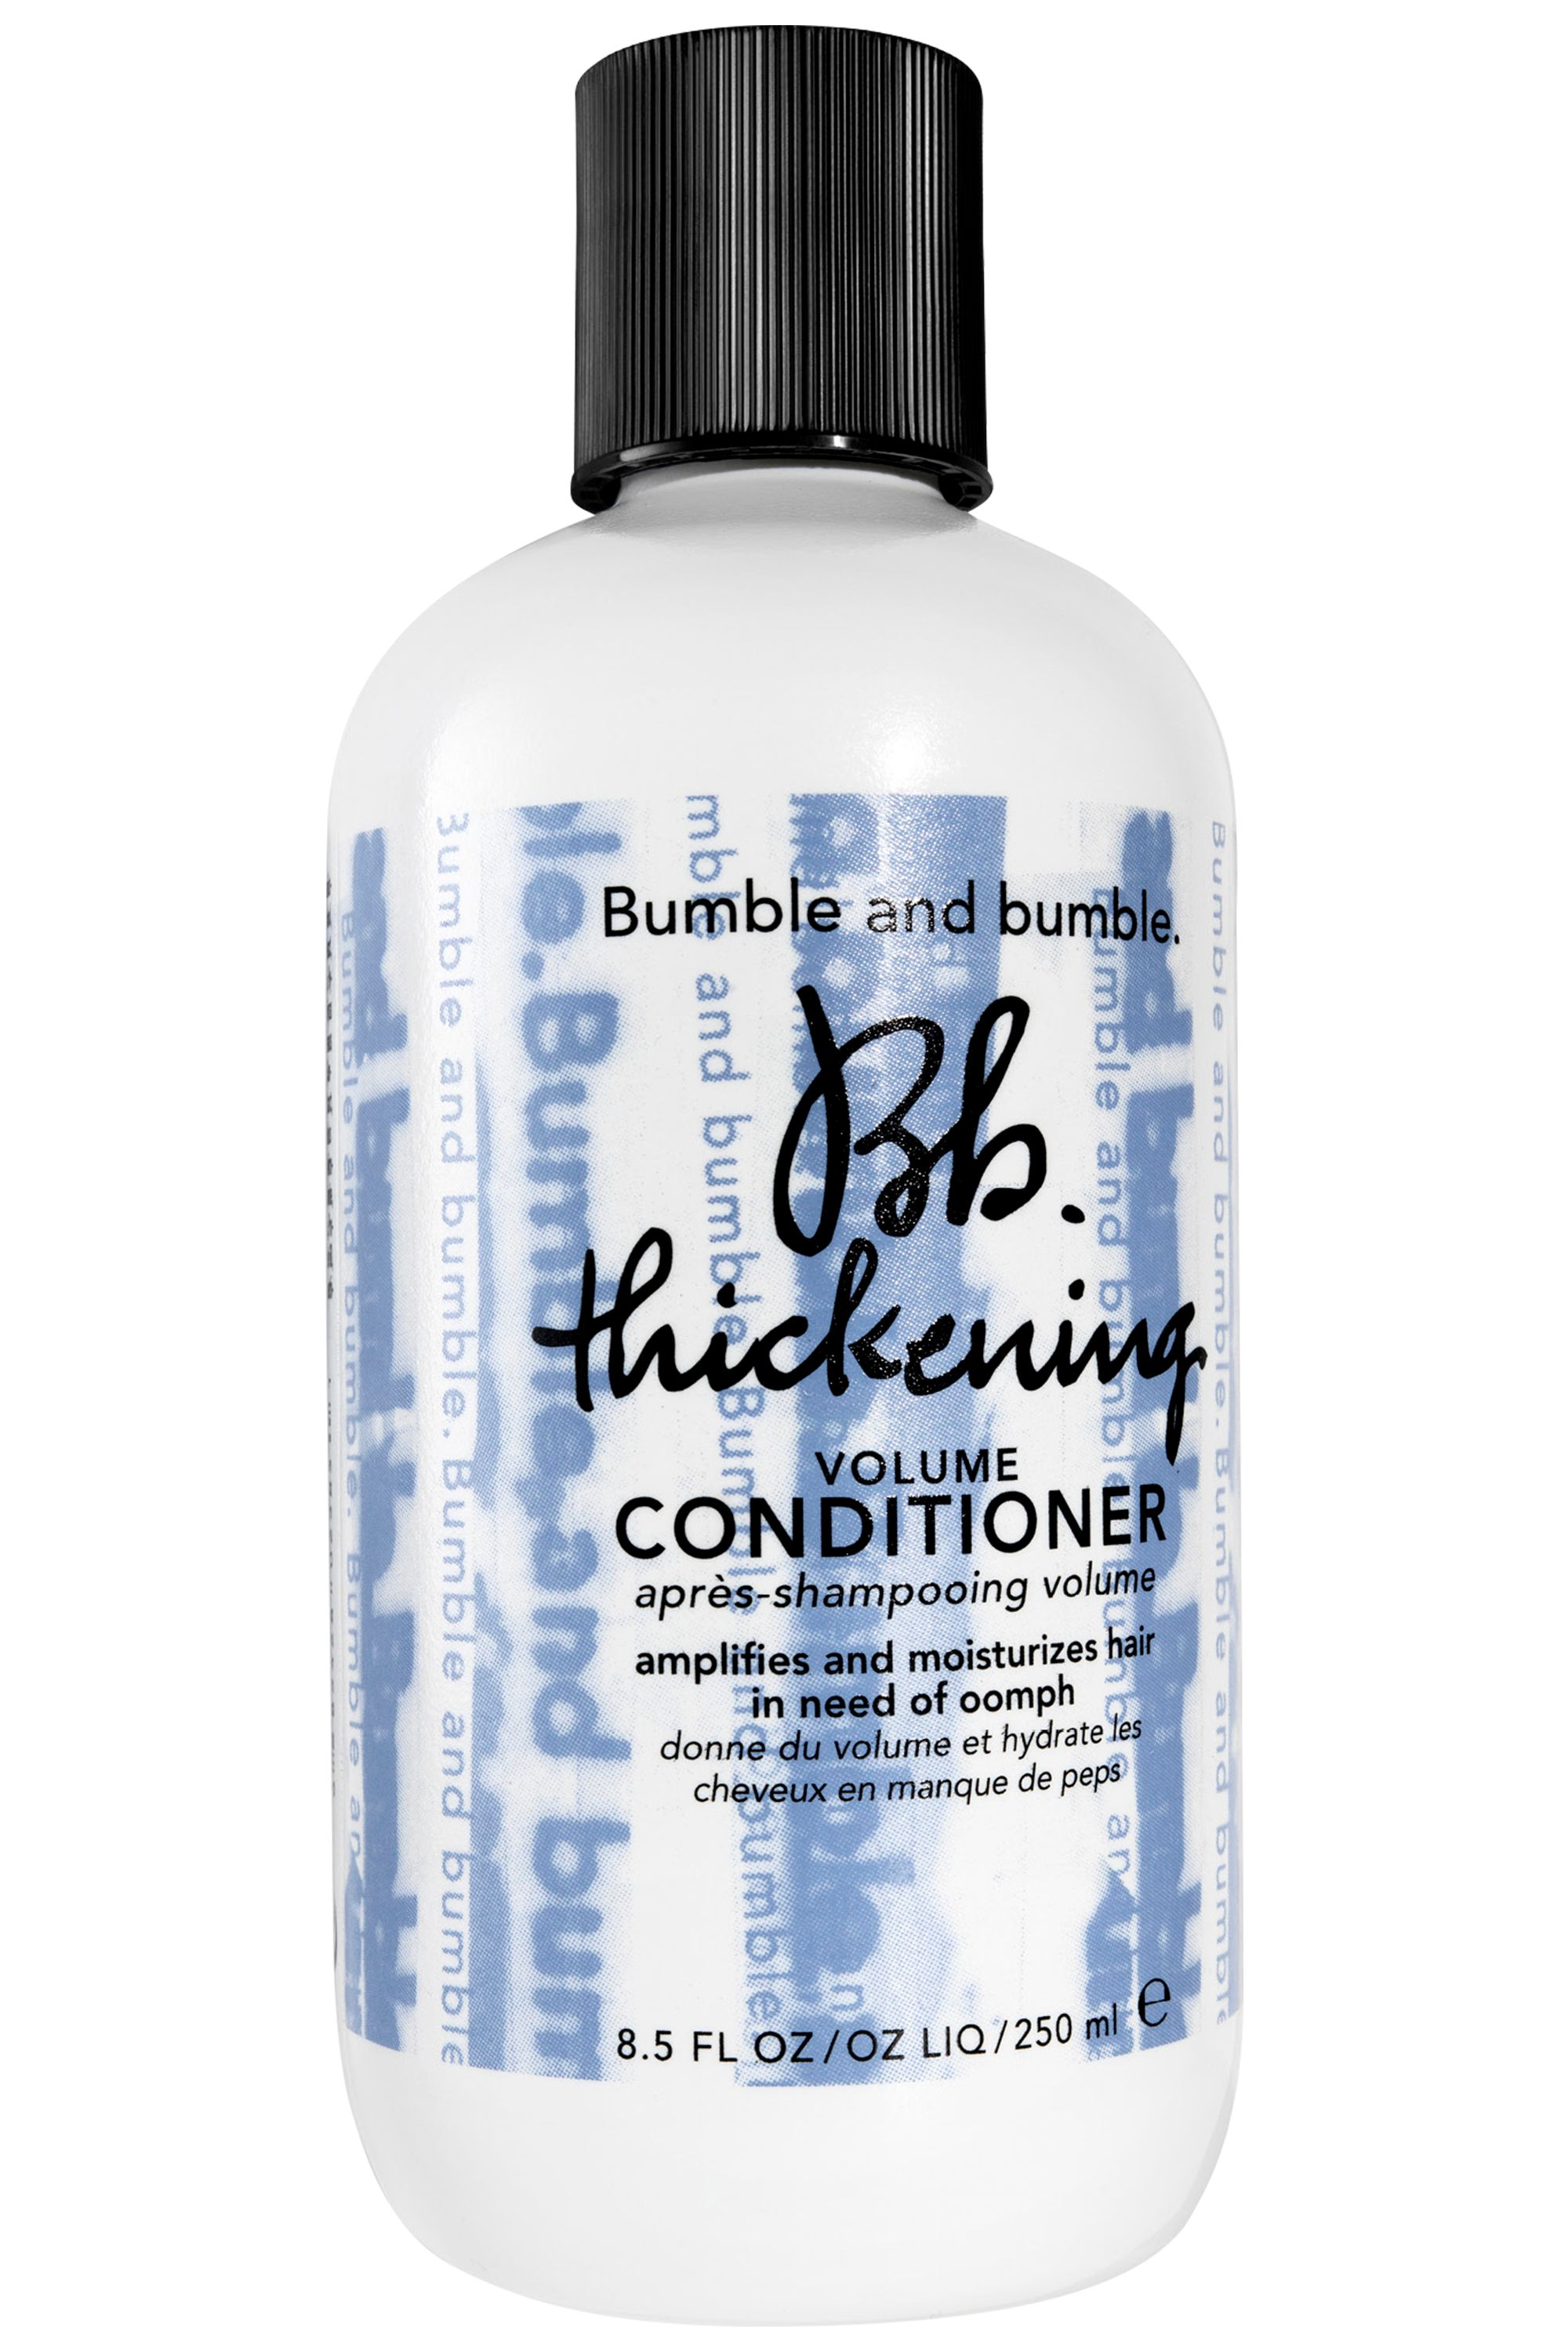 Blissim : Bumble and bumble. - Après-shampooing volumateur Volume Thickening - Après-shampooing volumateur Volume Thickening